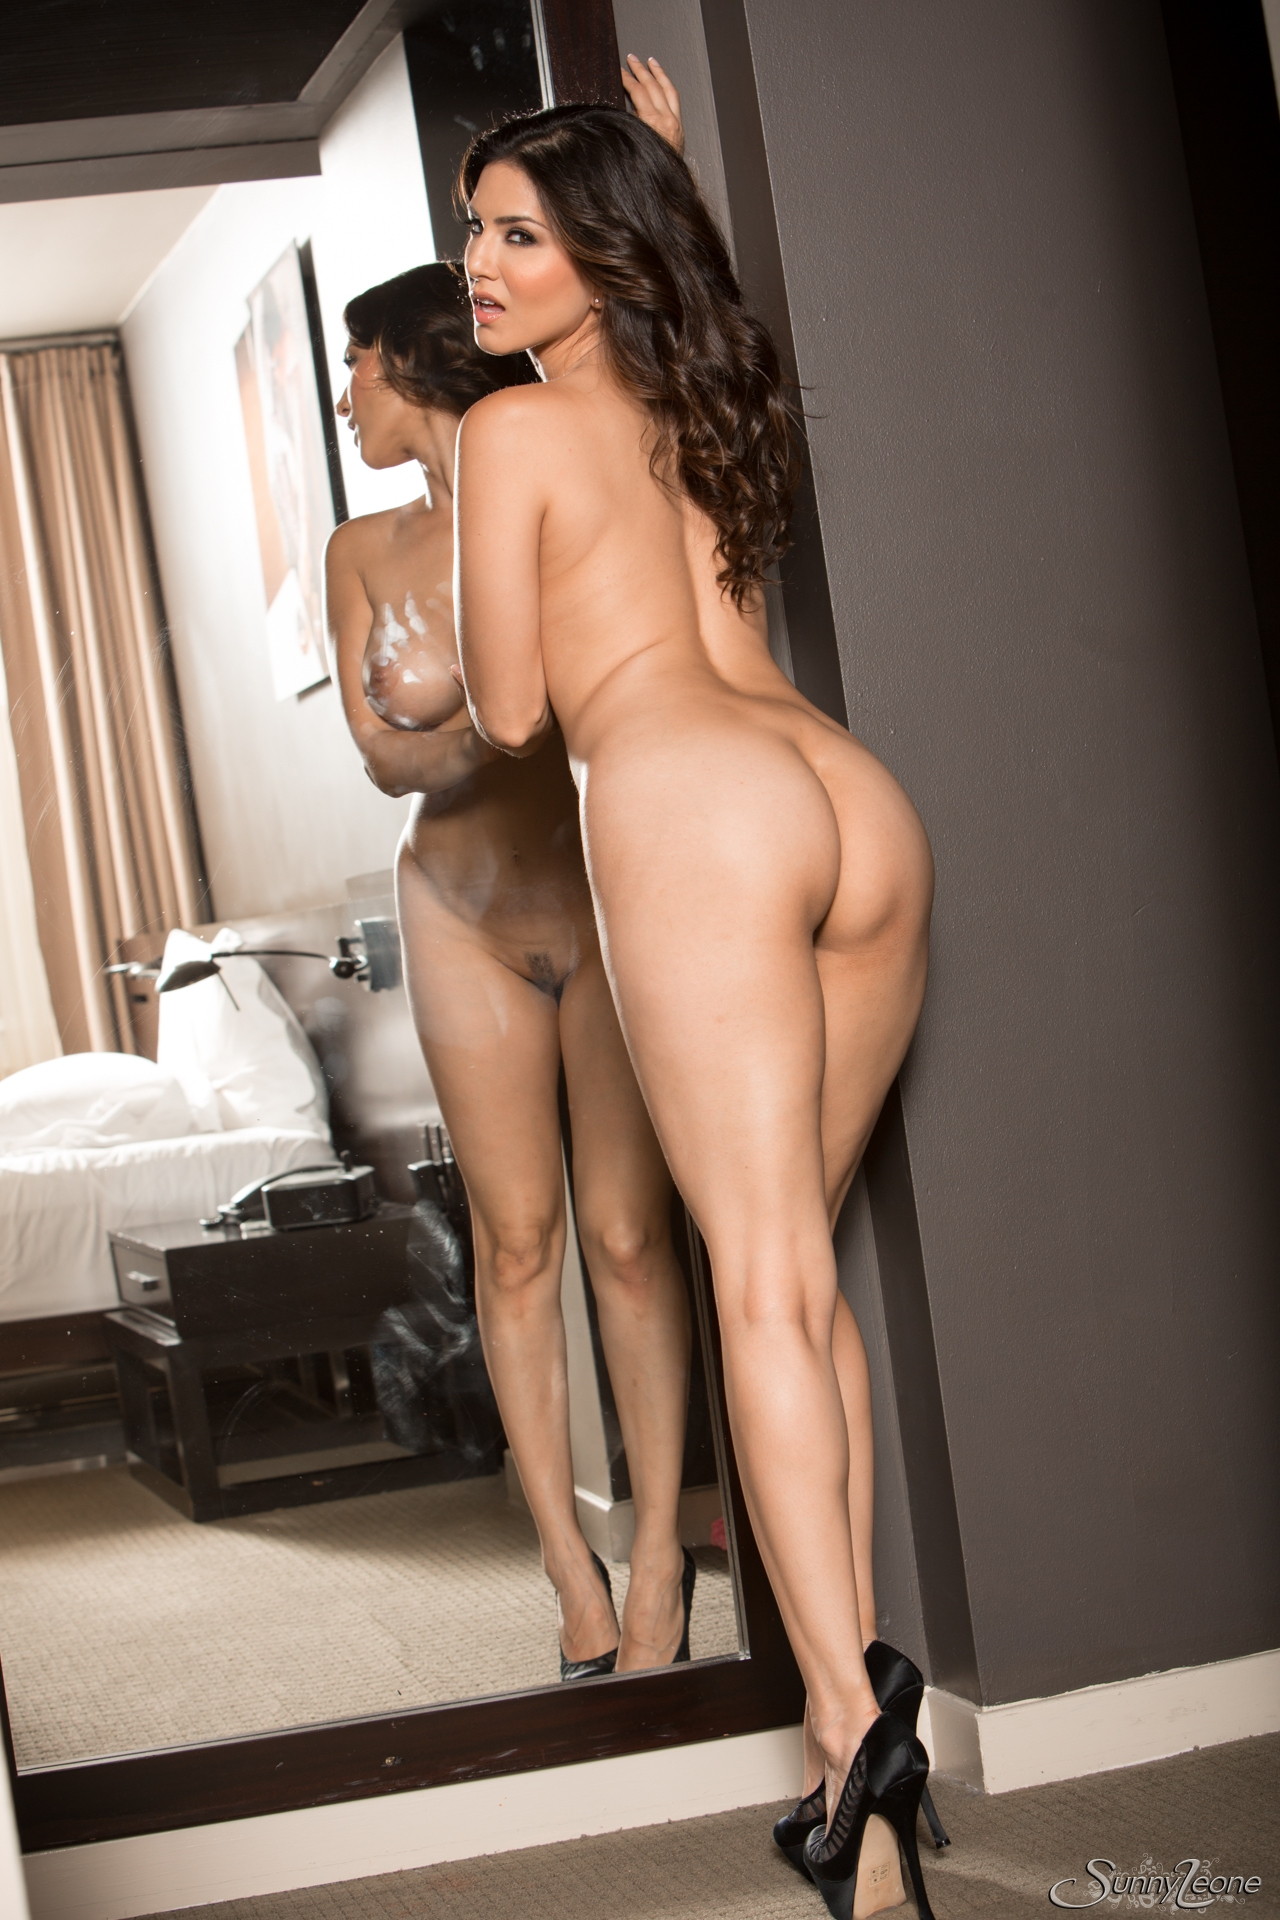 Horny Asian Babe Sunny Leone Takes Off Dress And Reveals -9825